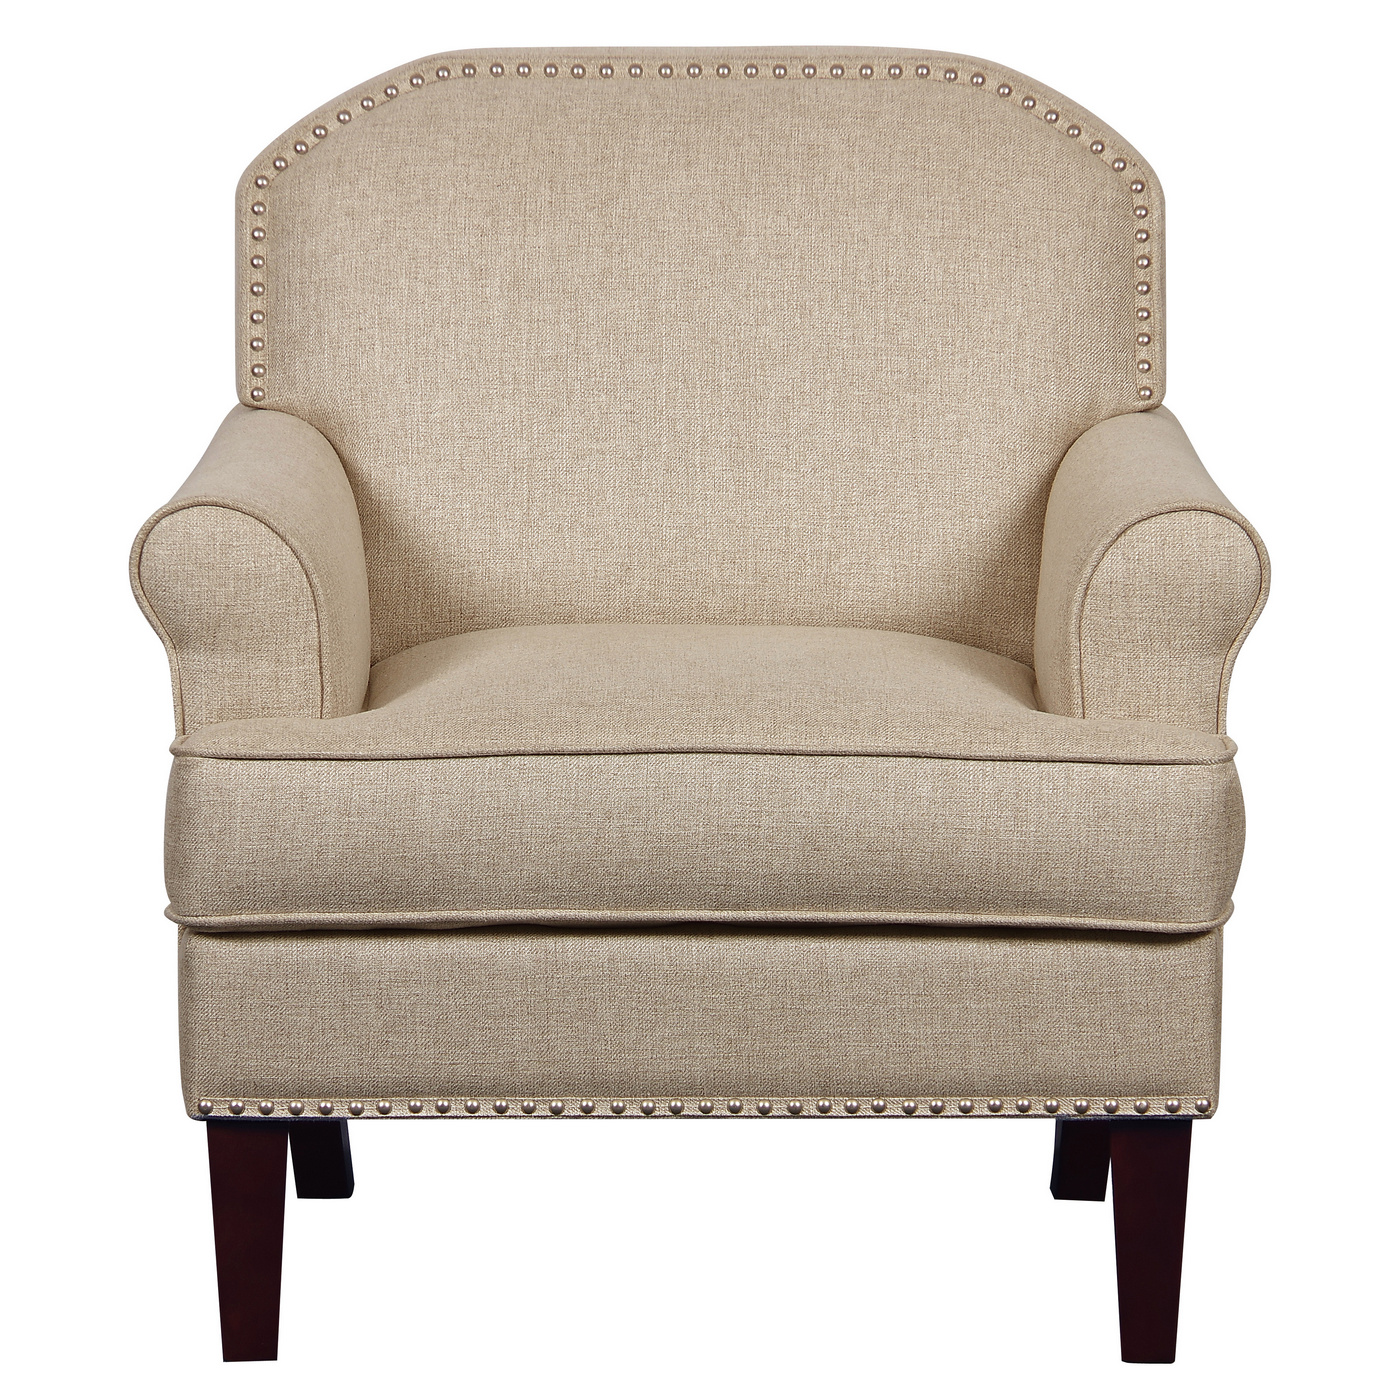 transitional accent chairs swing chair furniture raven rock roll arm nailhead trim beige image is loading